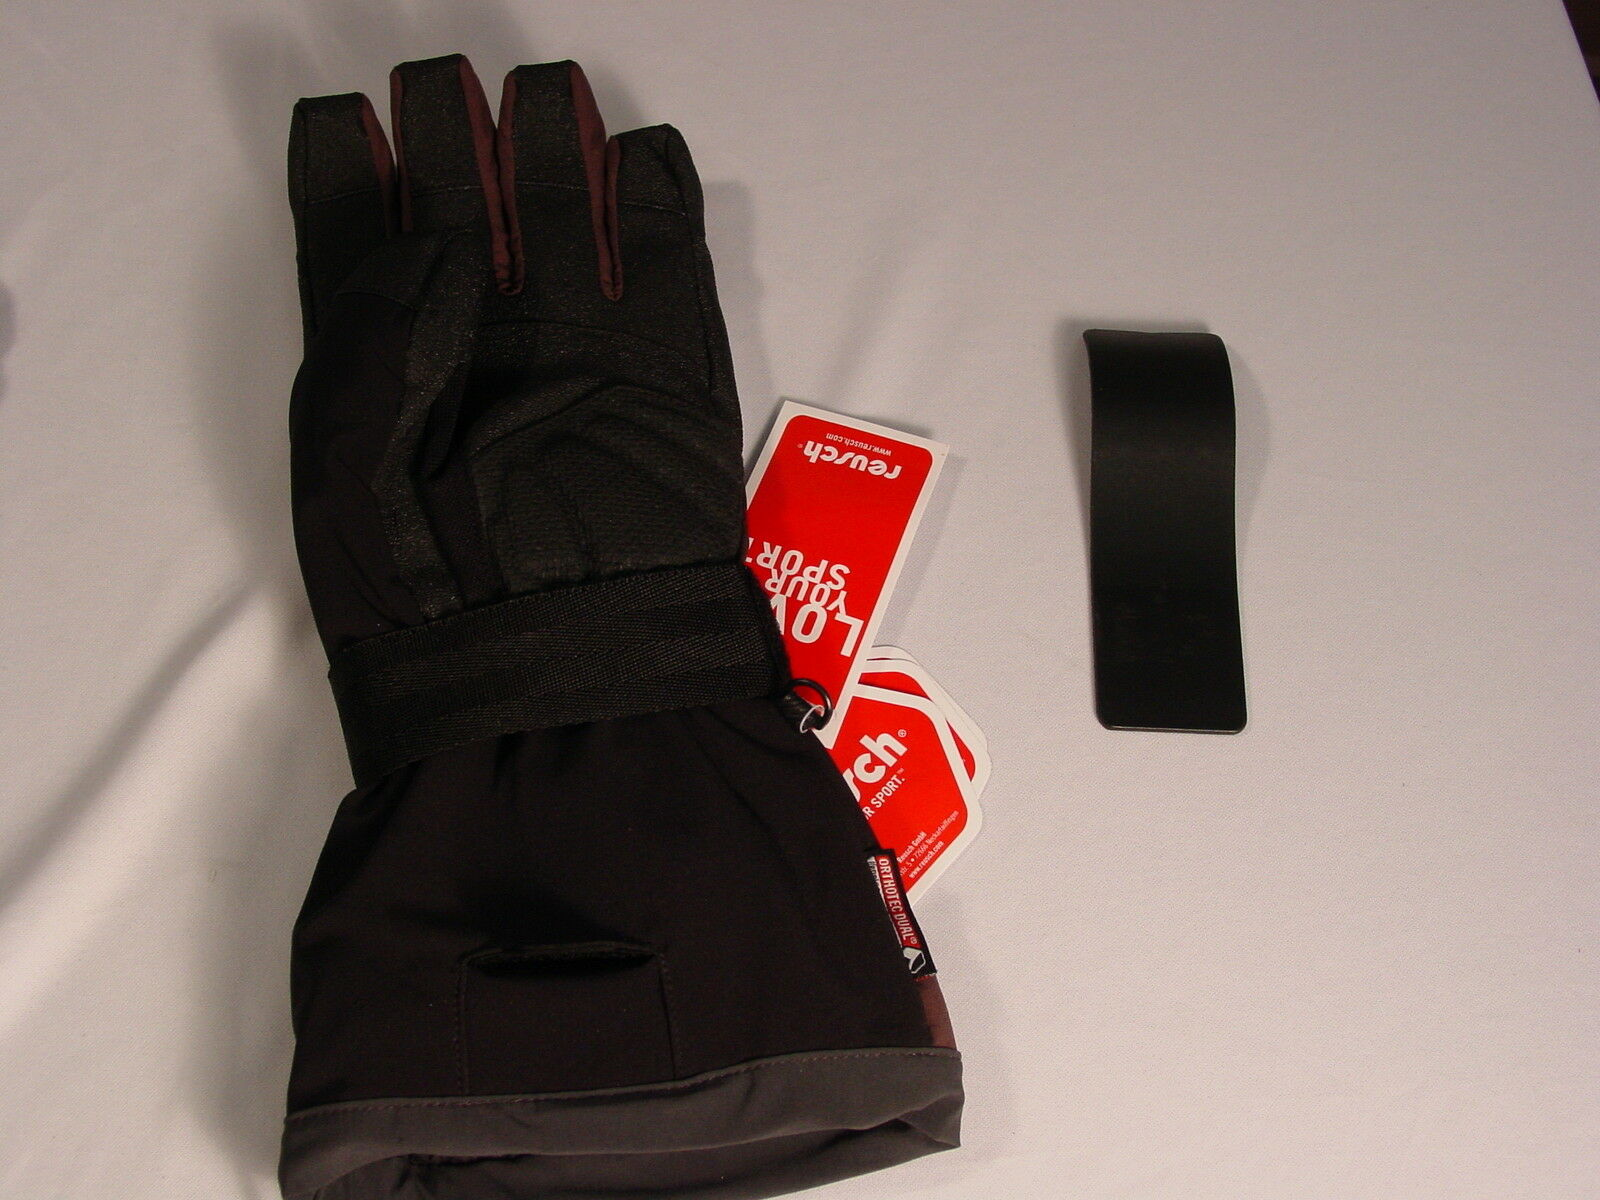 Reusch Wrist Brace Protection Board Softshell Gloves Med 8.5 8.5 8.5 Vert Rtex 2904203 035dc6